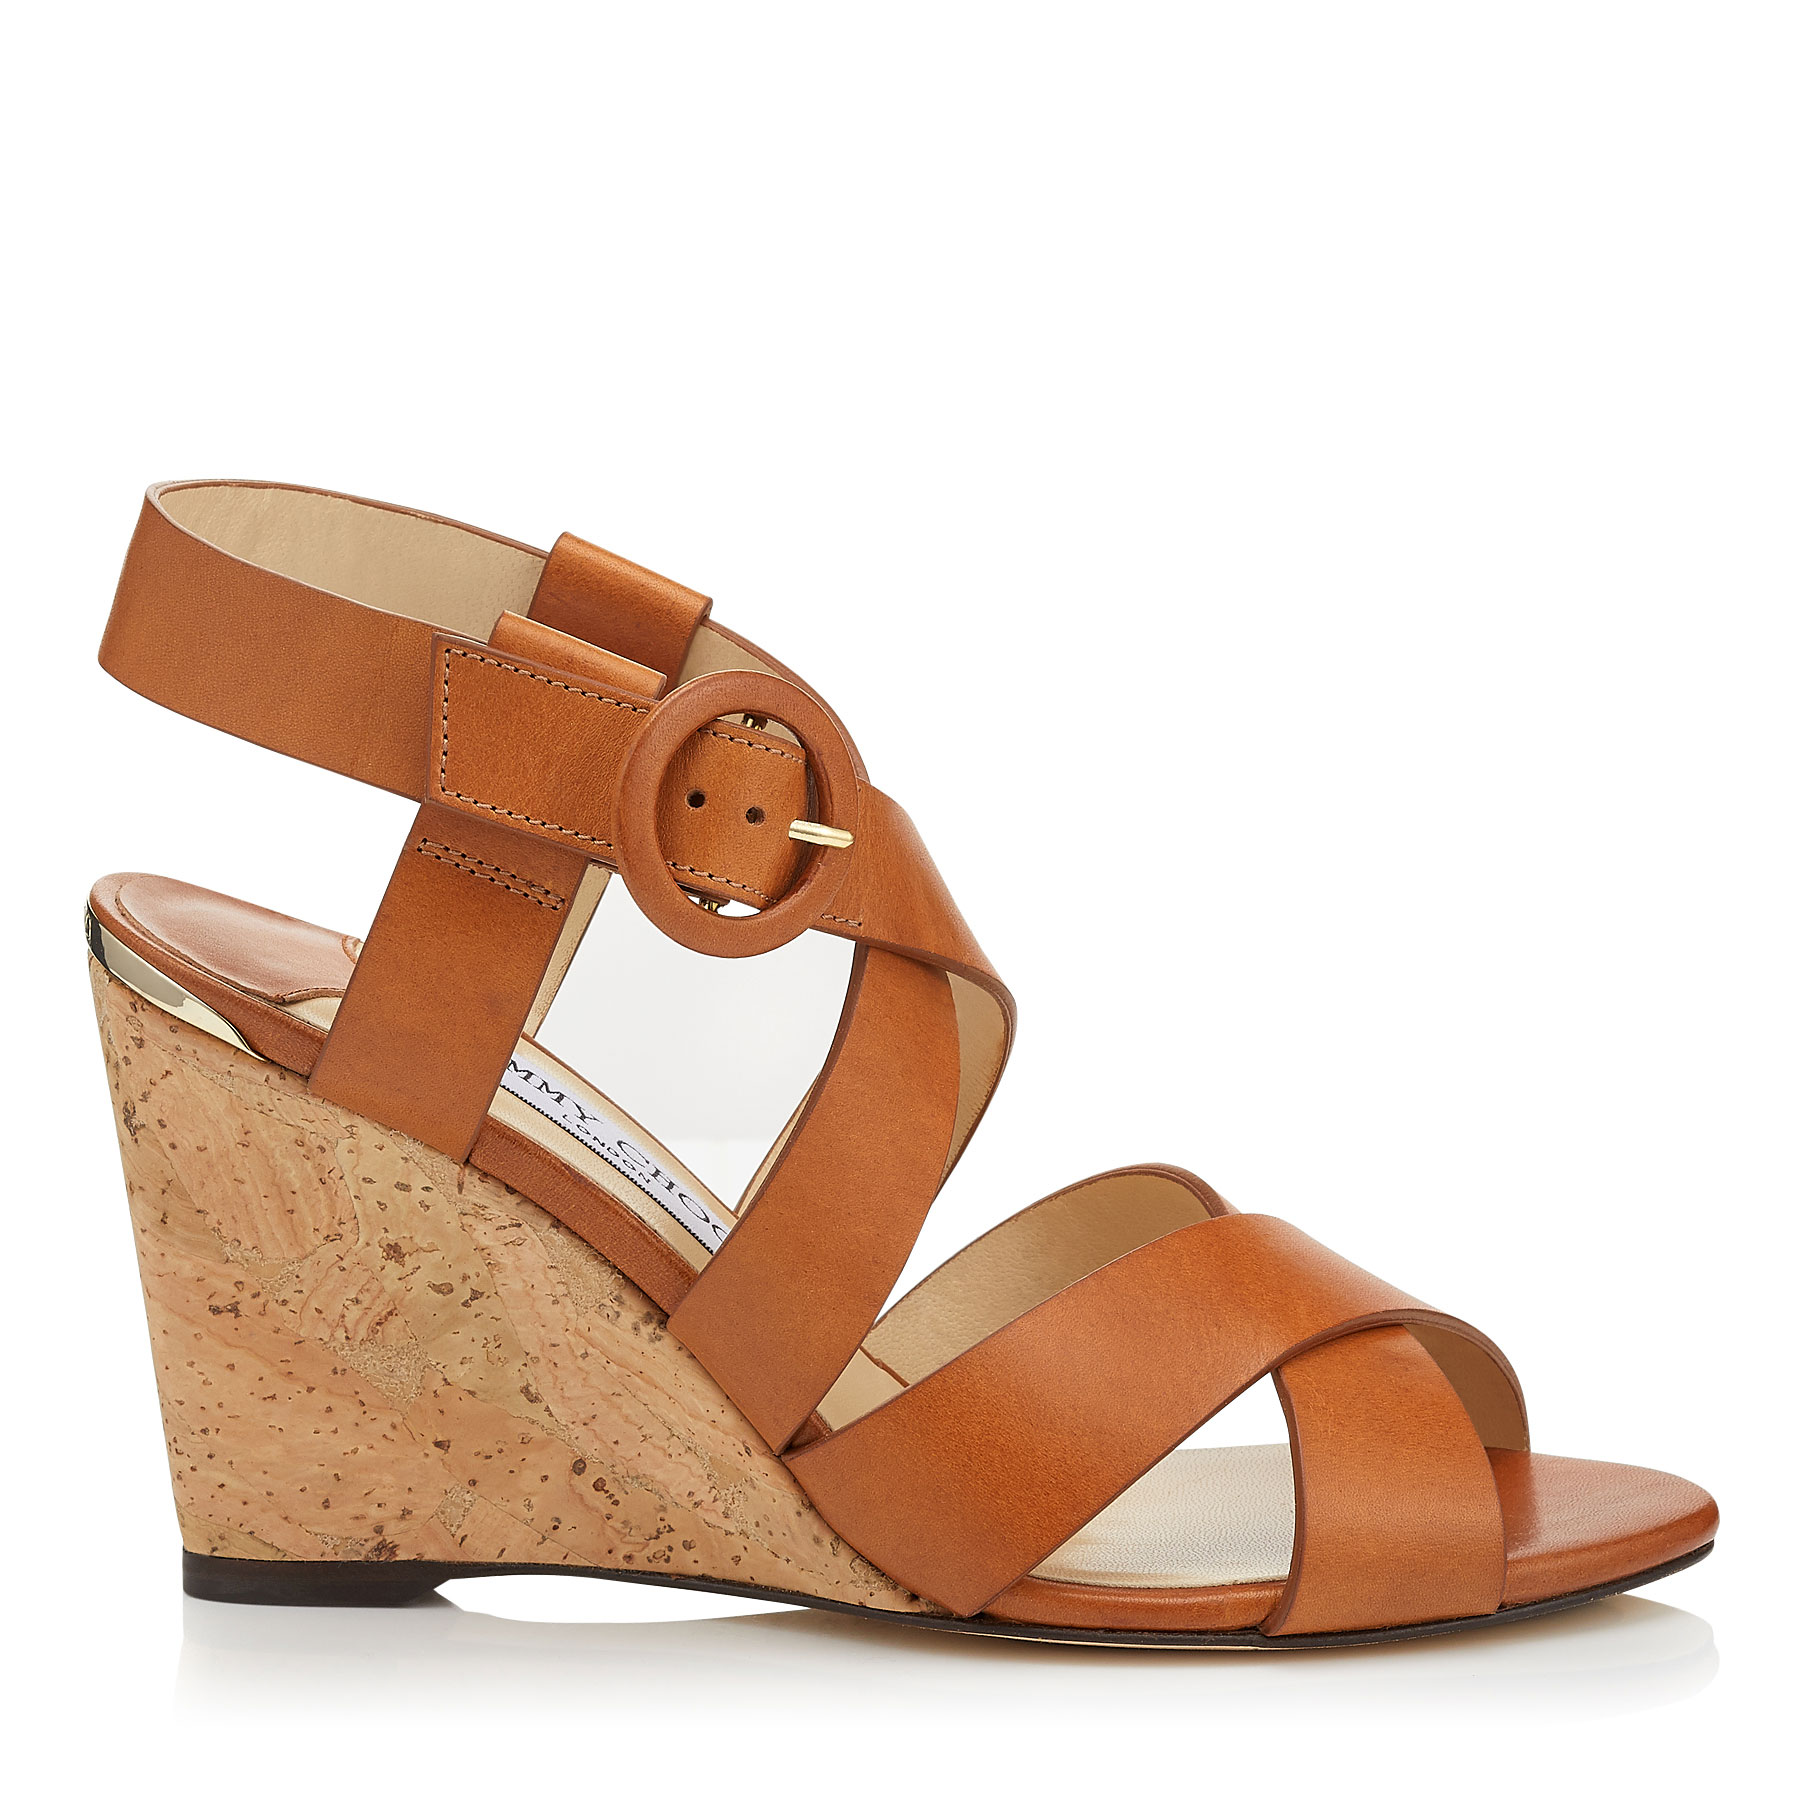 DOMENIQUE 85 Tan Vachetta Leather Cork Wedges by Jimmy Choo